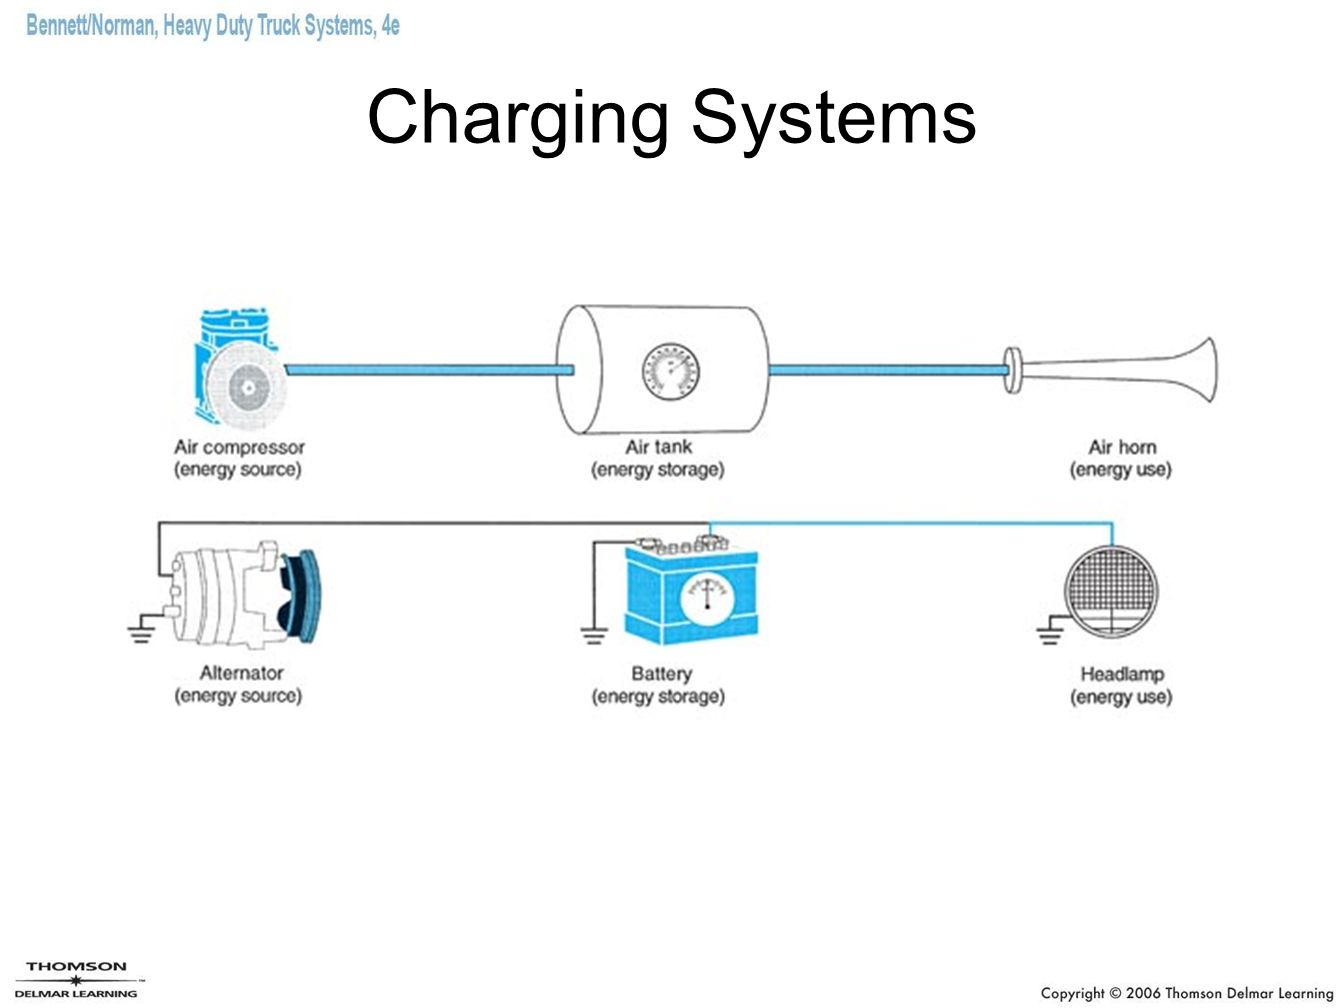 Chapter 8 Charging Systems